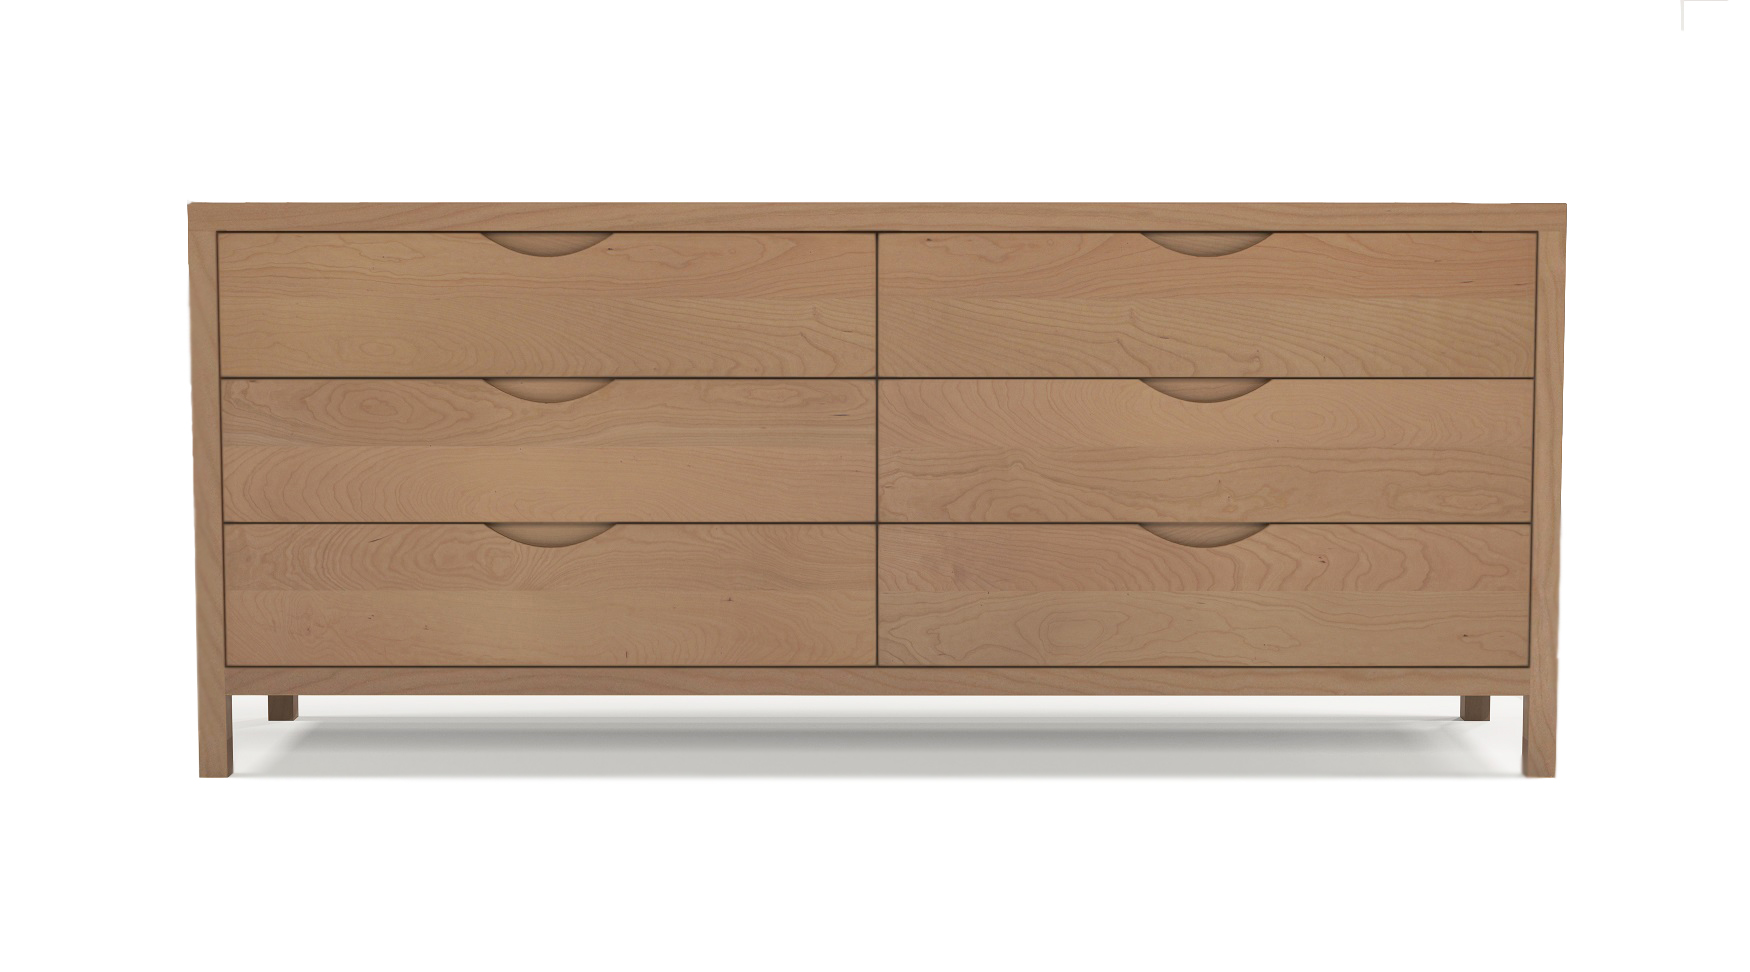 "Cherry wood luxury furniture six drawer 72"" dresser with integrated wood handles"